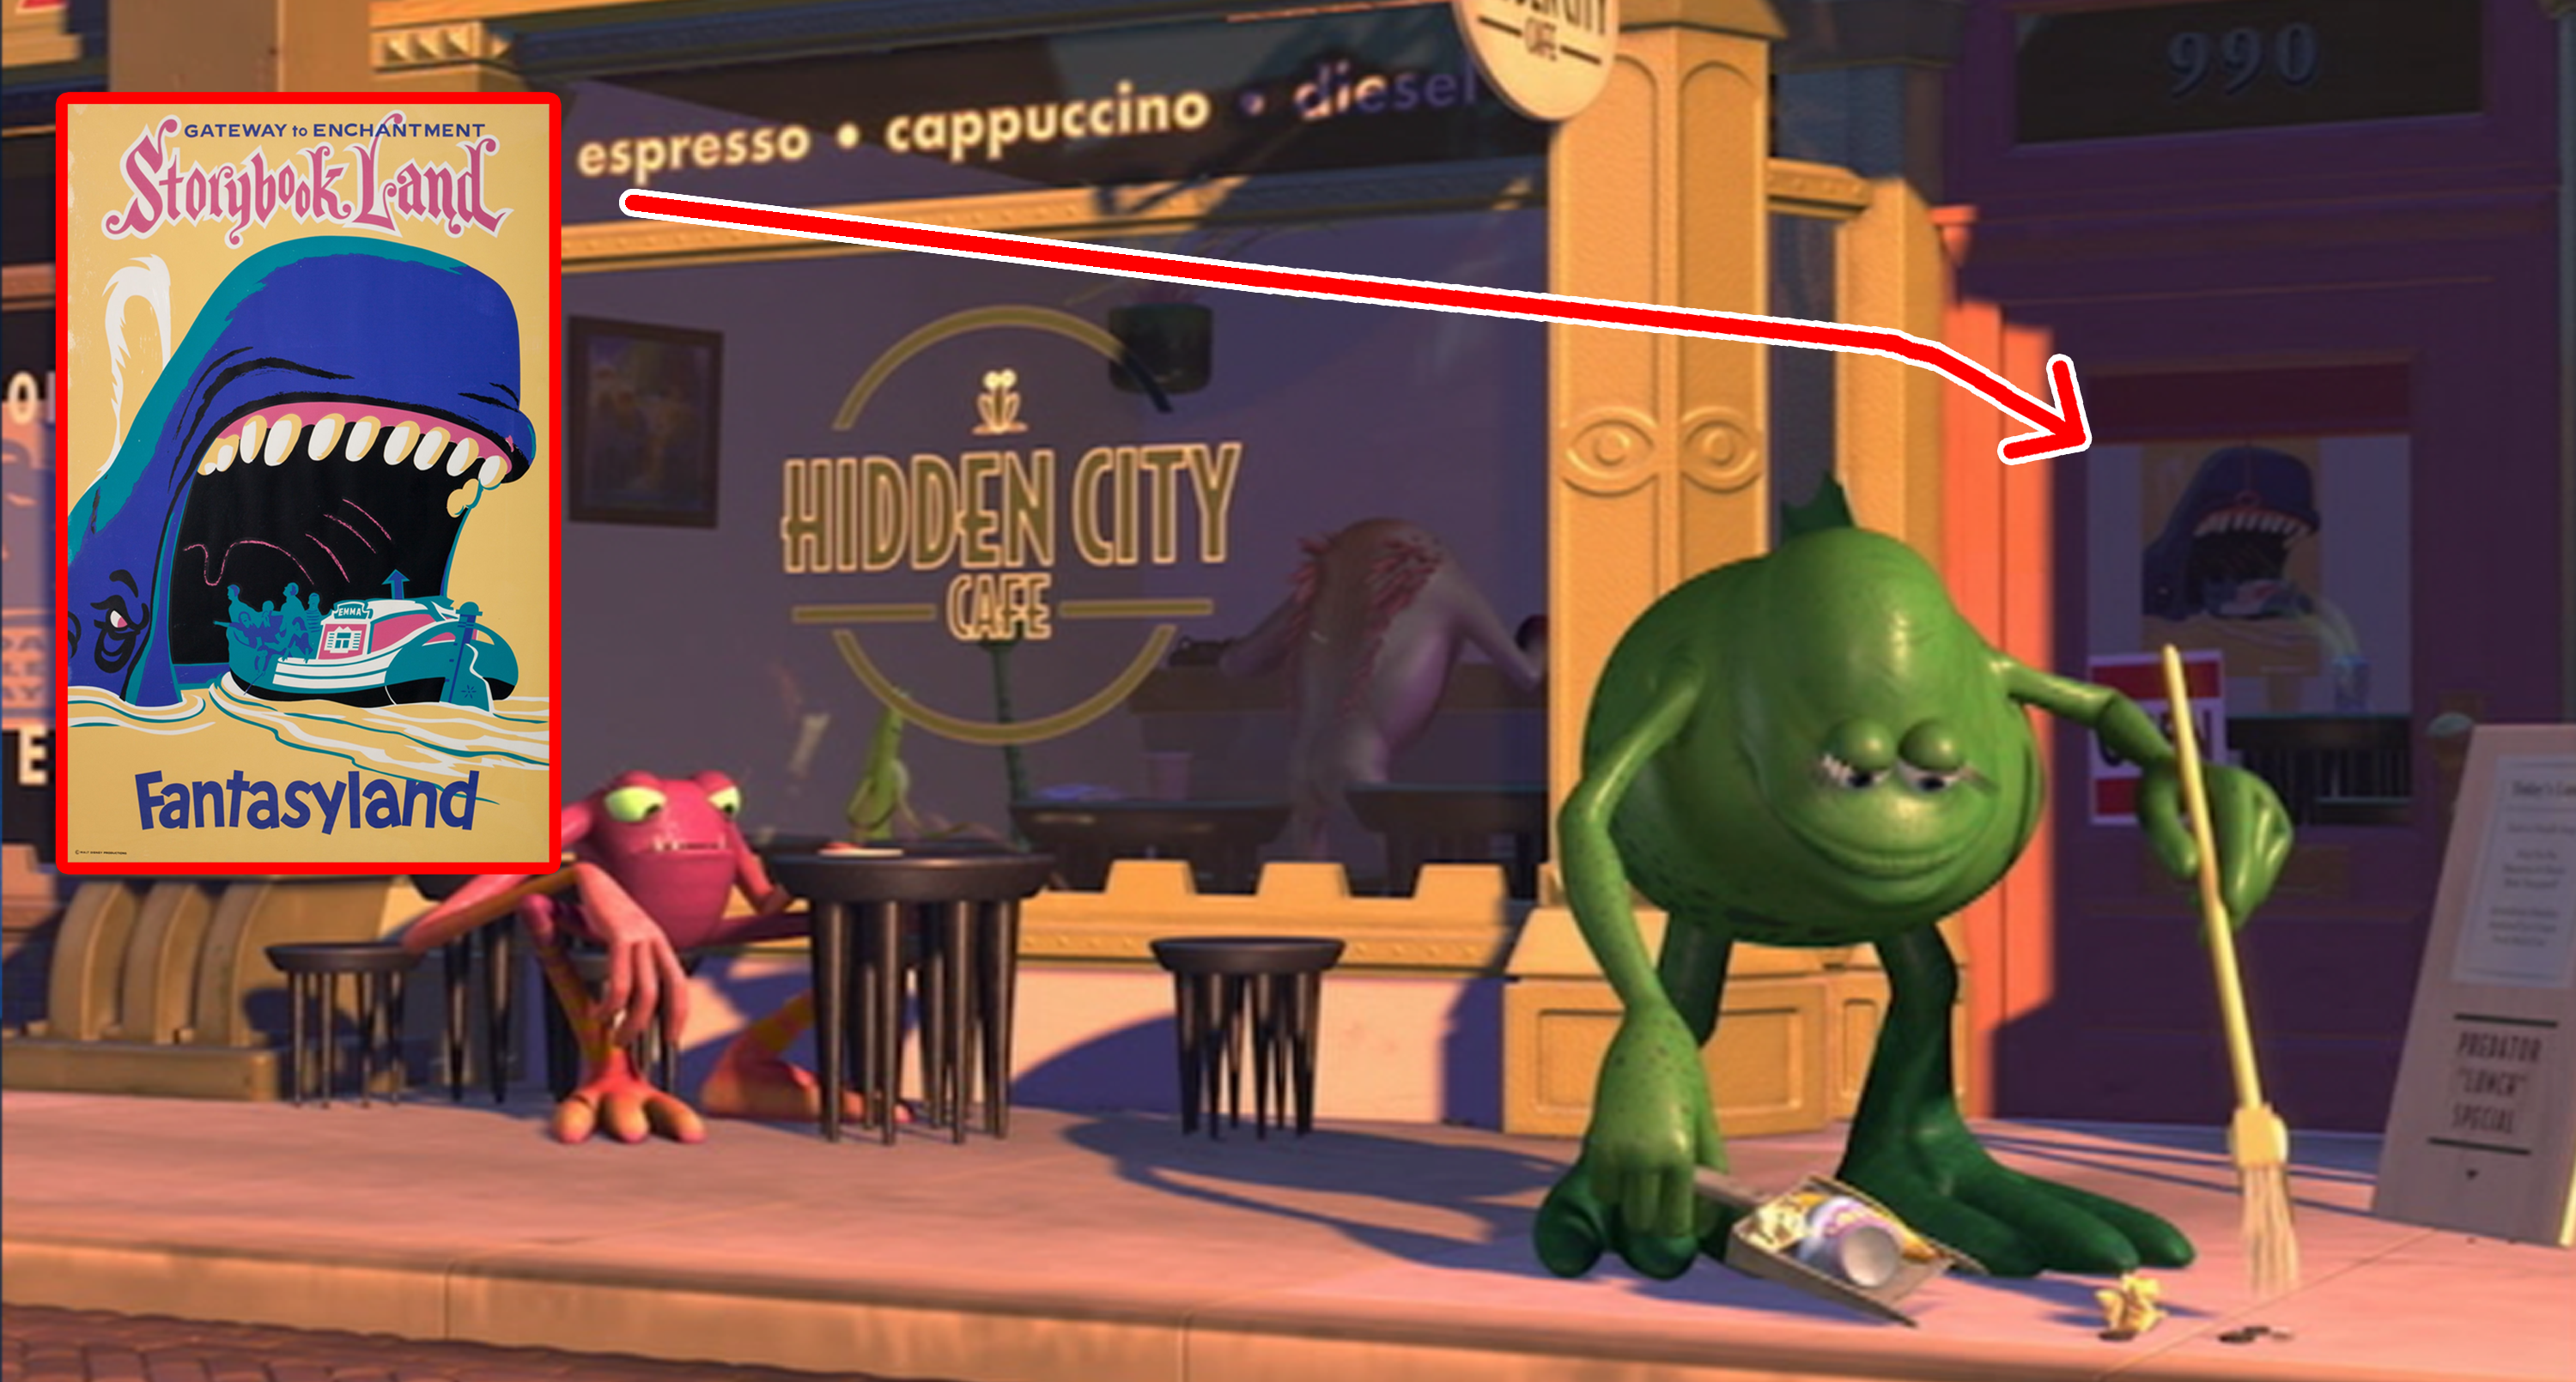 Tony Monsters Inc Related Keywords & Suggestions - Tony